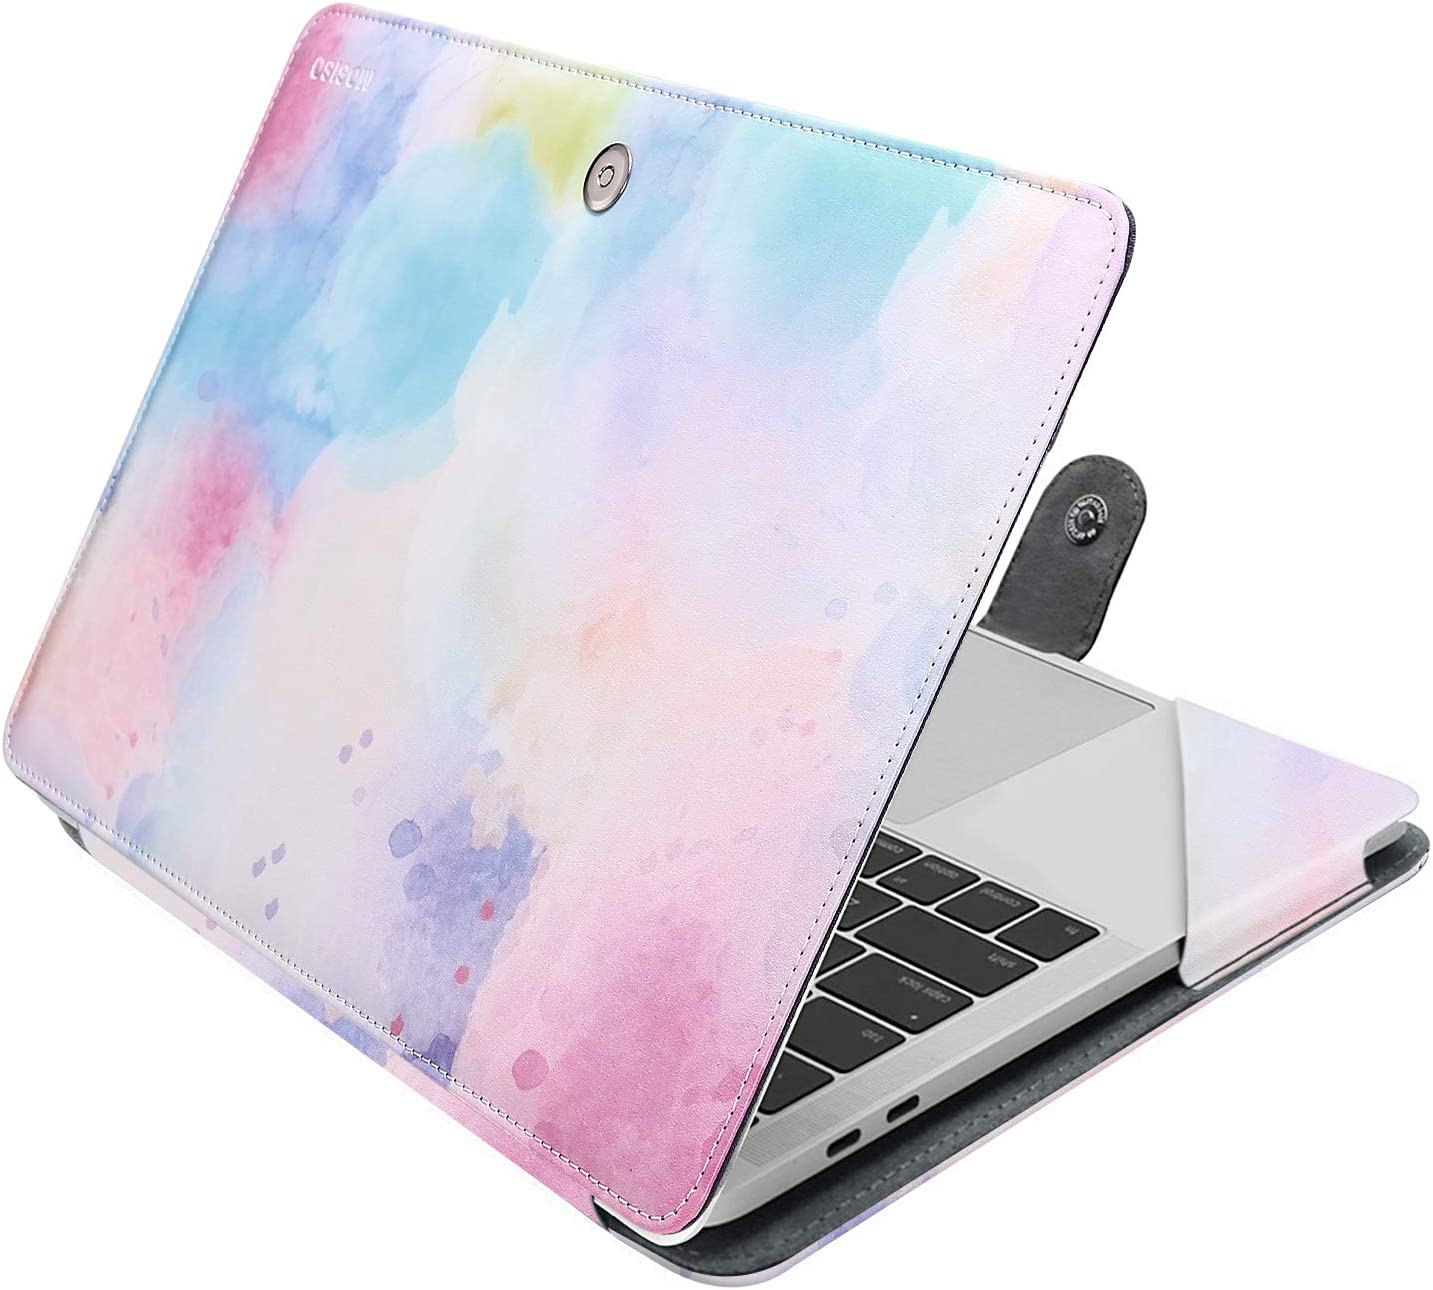 MOSISO Case Compatible with 2020-2018 MacBook Air 13 A2179 A1932 /2020-2016 MacBook Pro 13 A2251/A2289/A2159/A1989/A1706/A1708, PU Leather Folio Protective Laptop Cover Sleeve, Colorful Clouds